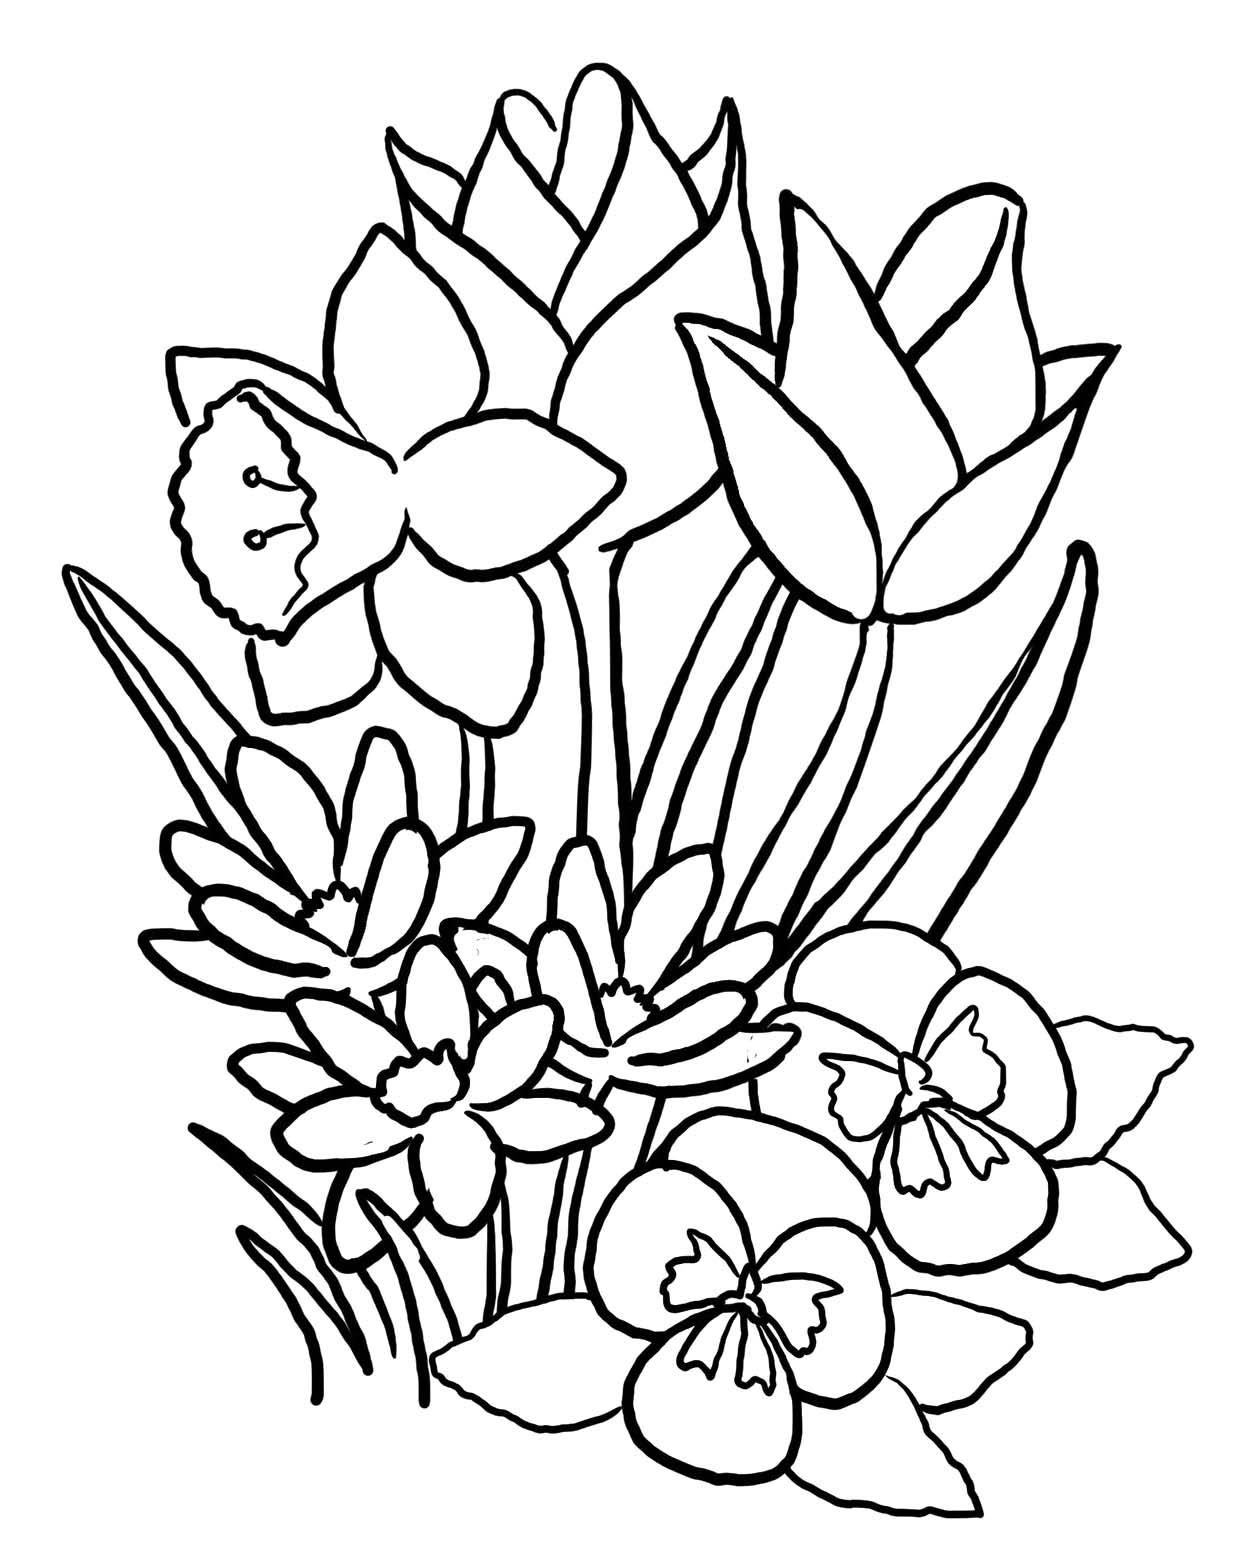 colouring pictures of flowers free printable flower coloring pages for kids best of flowers pictures colouring